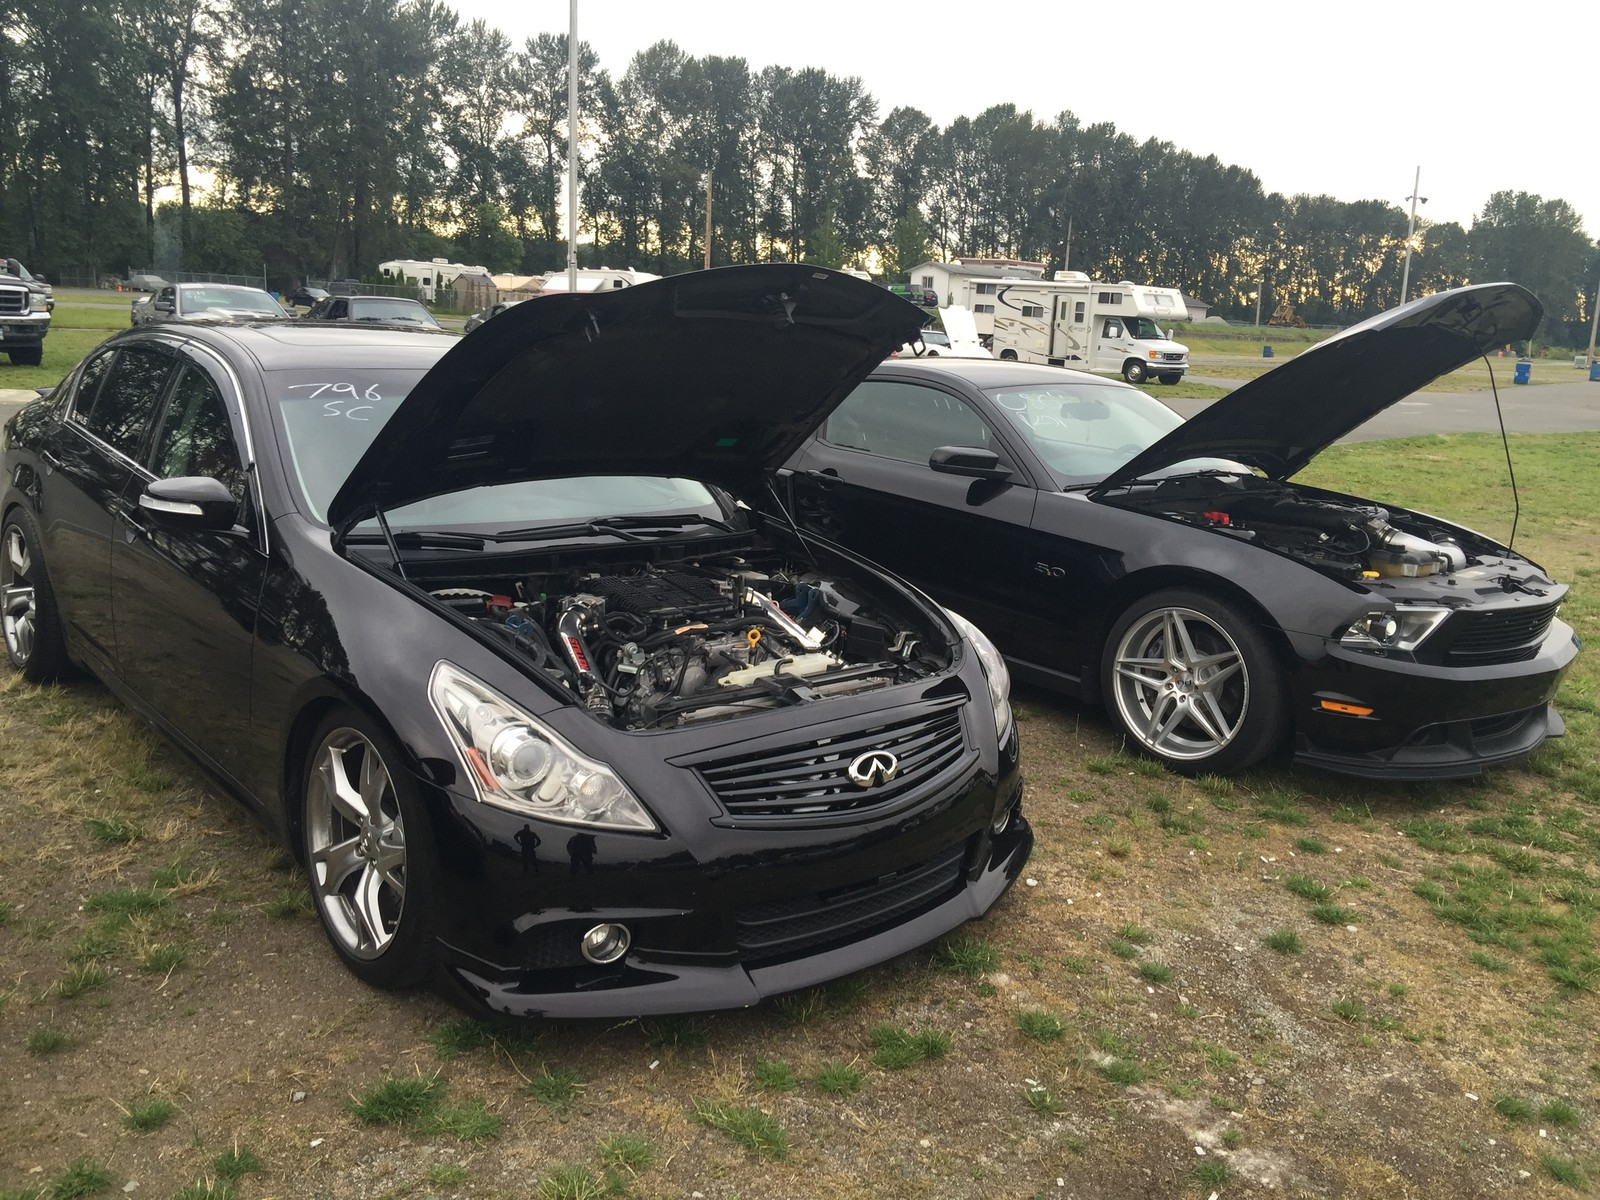 G37 Sedan 0 60 >> 2011 Infiniti G37 1/4 mile trap speeds 0-60 - DragTimes.com